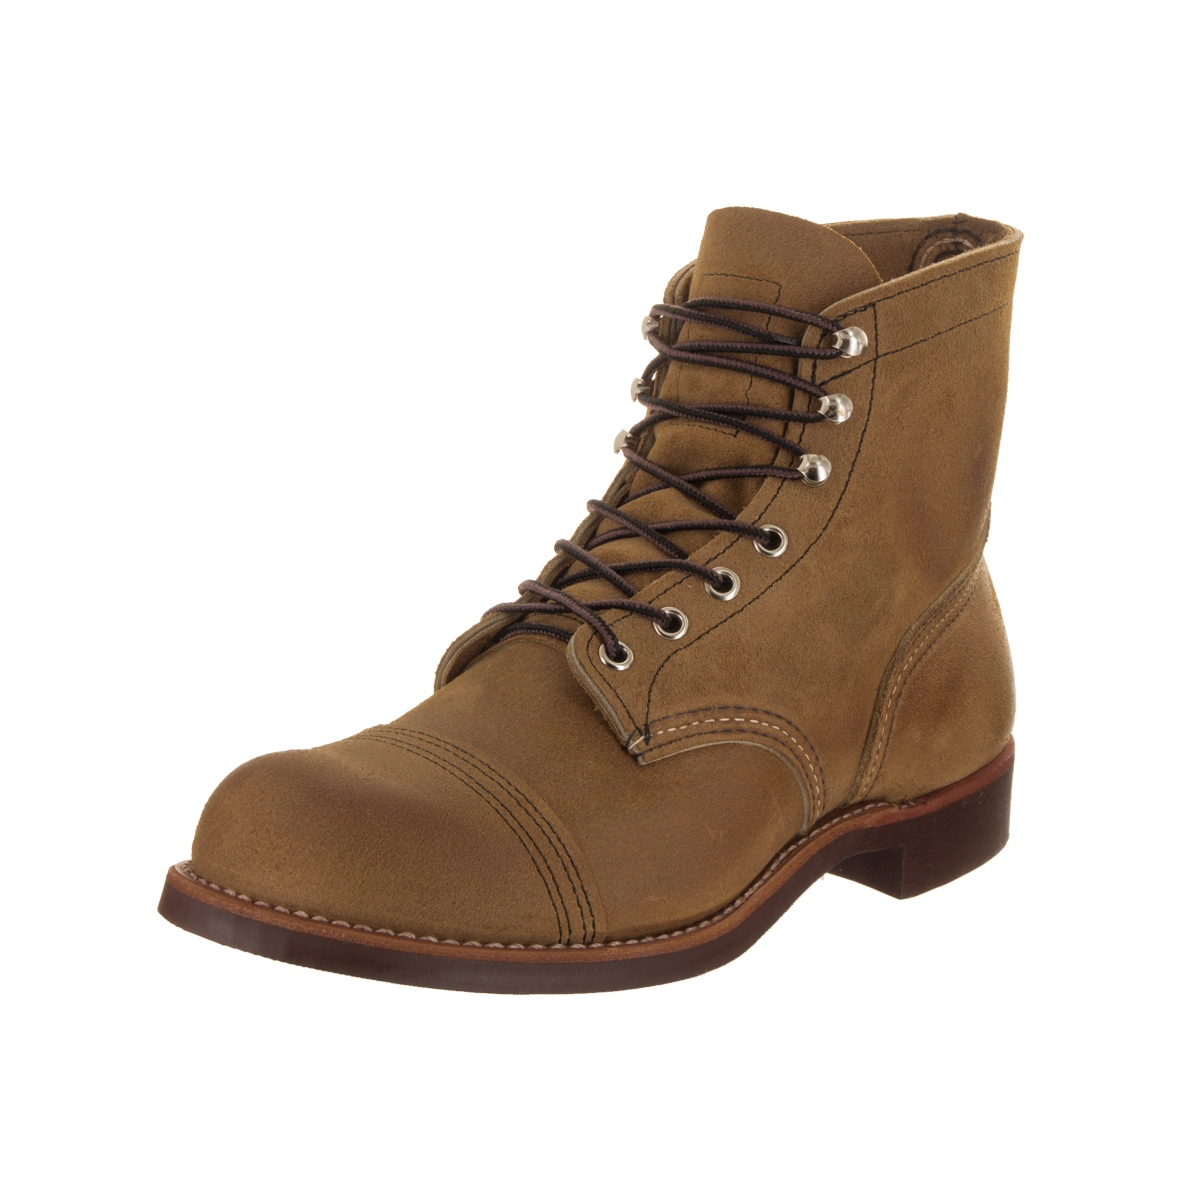 afbad568b Shop Red Wing Shoes Men's Iron Ranger Brown Leather Boot - Free Shipping  Today - Overstock - 16739536